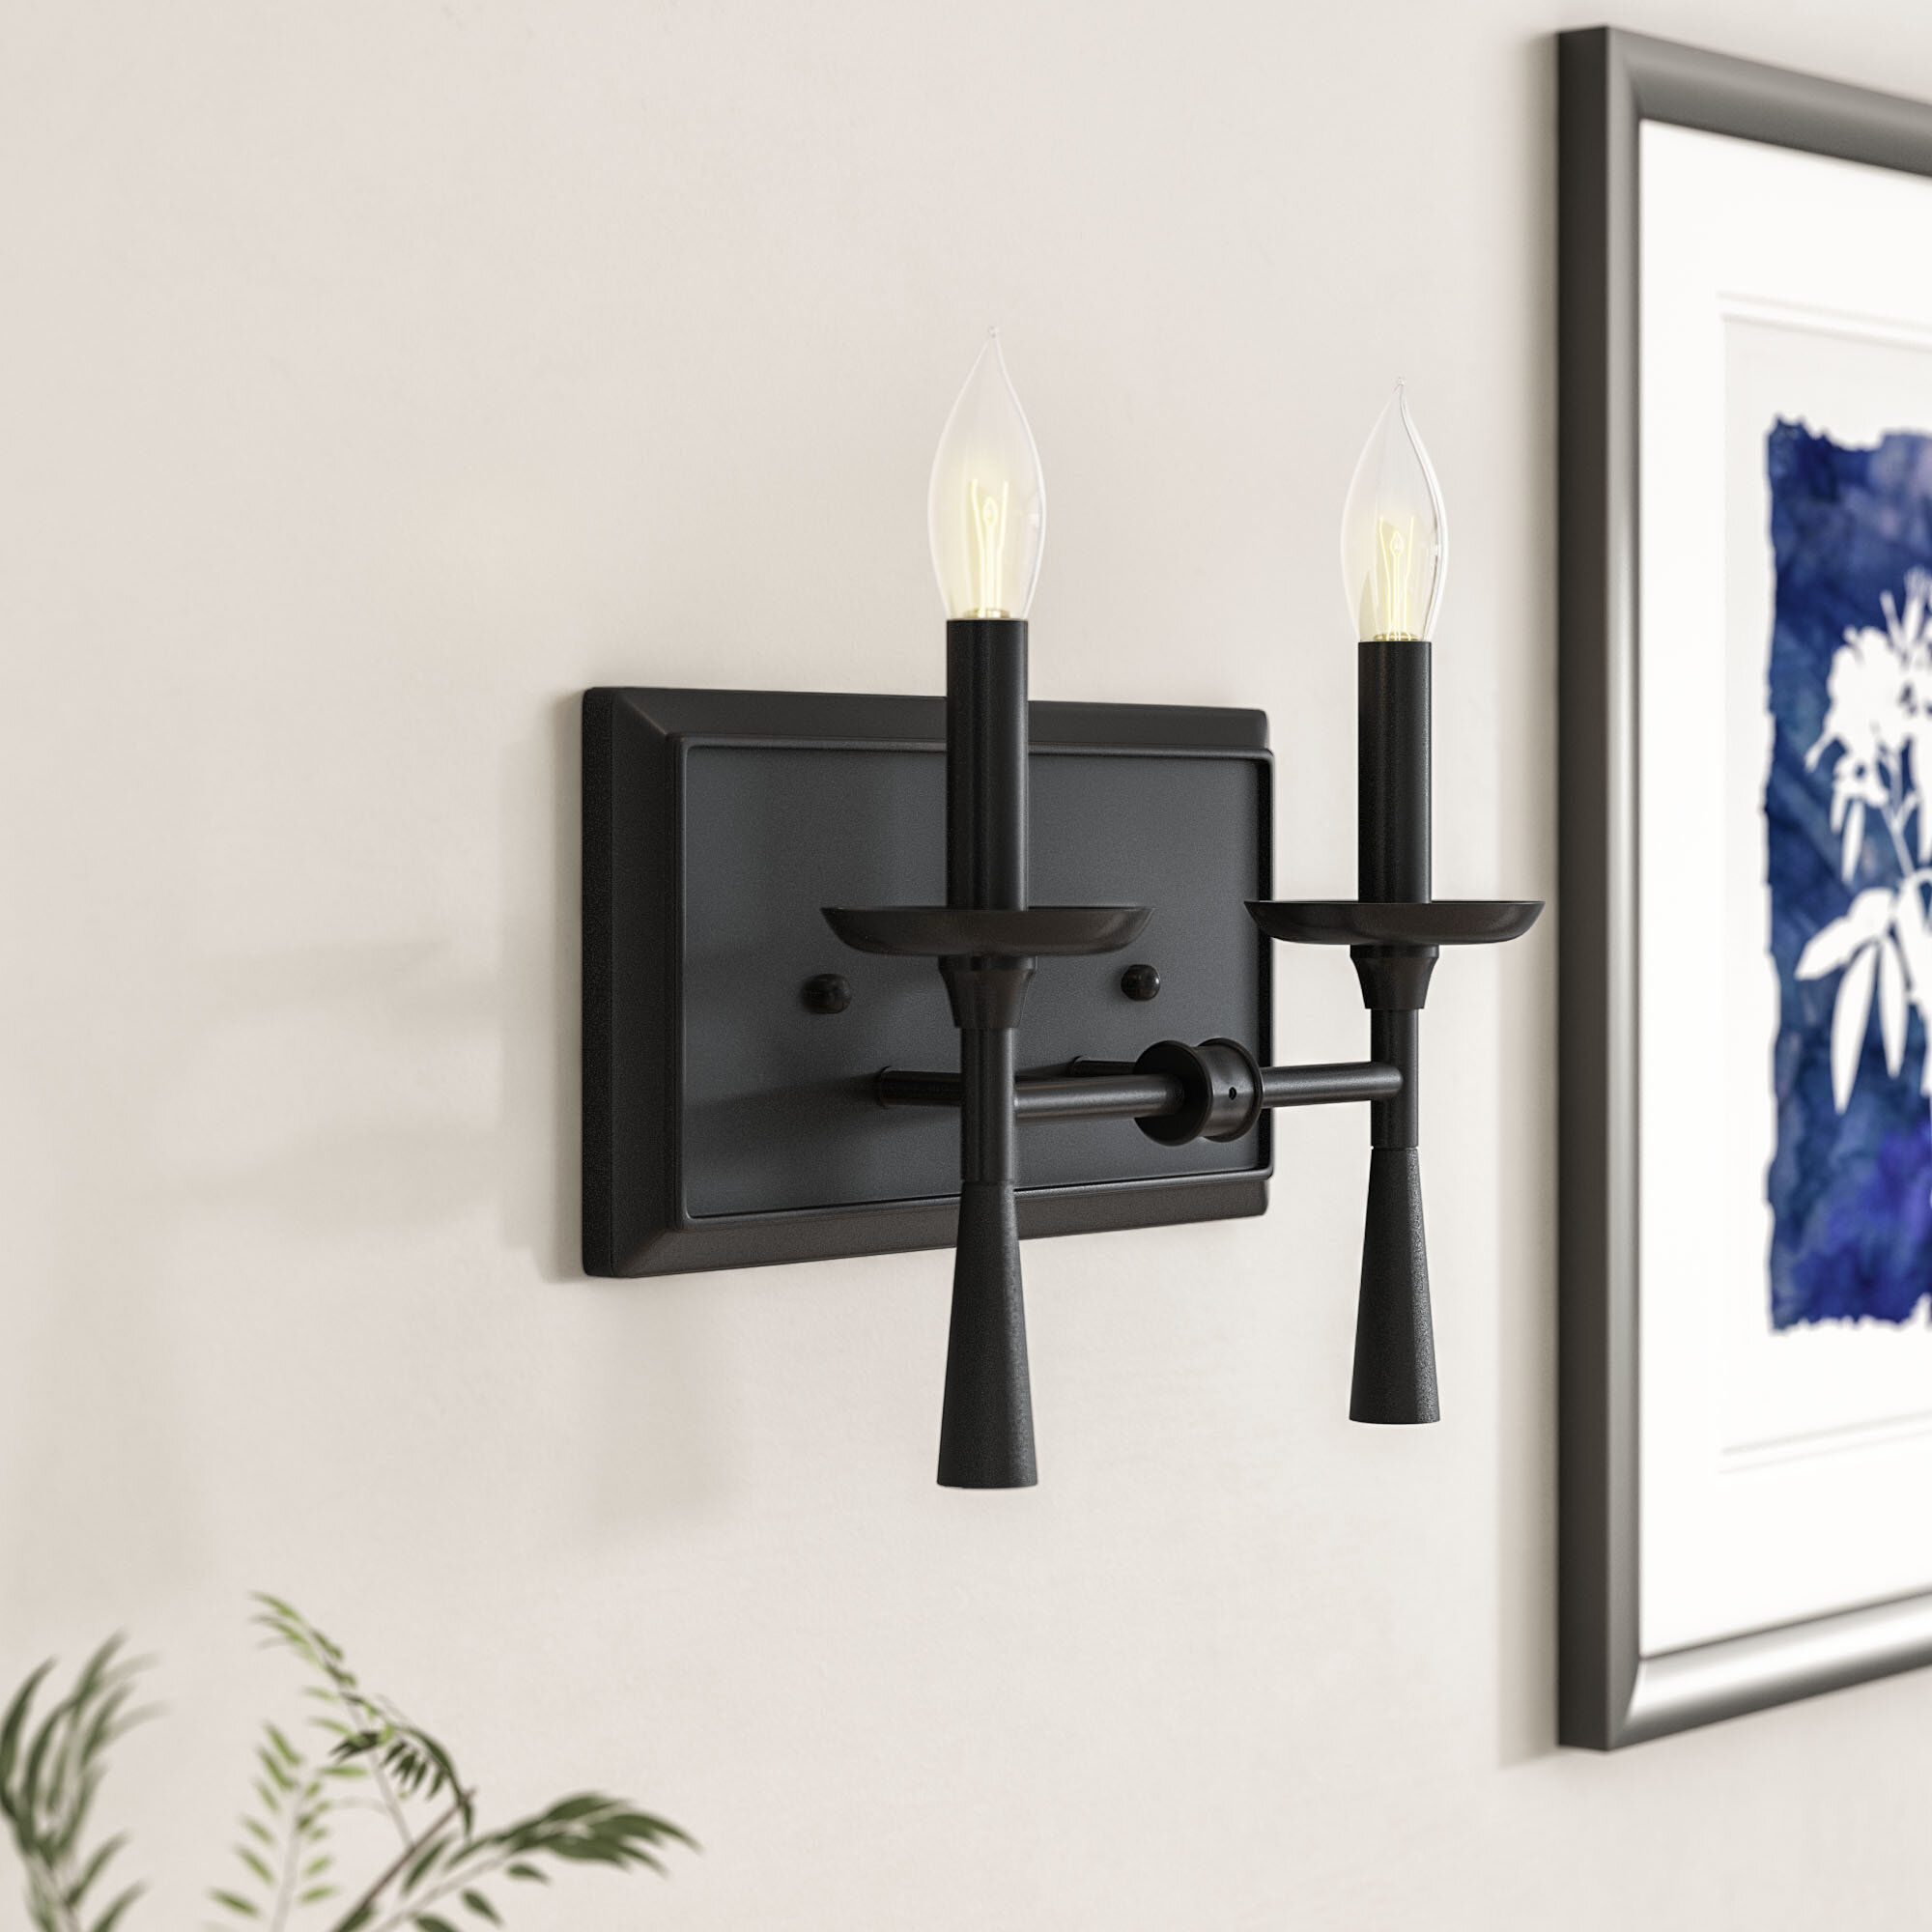 Wayfair Candle Wall Sconces You Ll Love In 2021